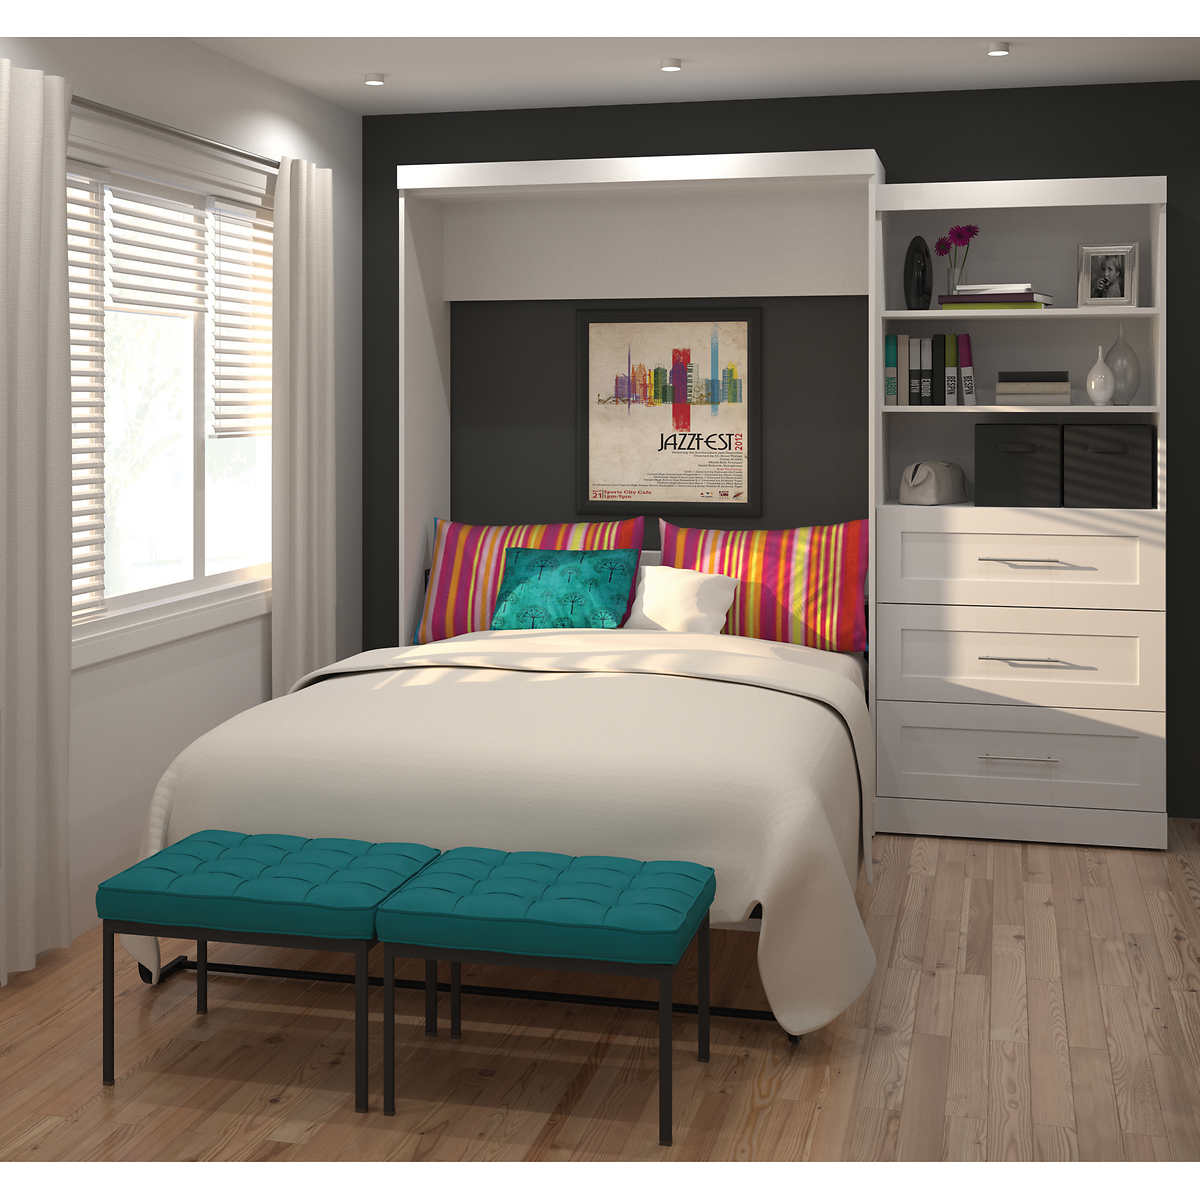 Boutique queen wall bed with one 36 storage unit with drawers in boutique queen wall bed with one 36 storage unit with drawers in white amipublicfo Gallery